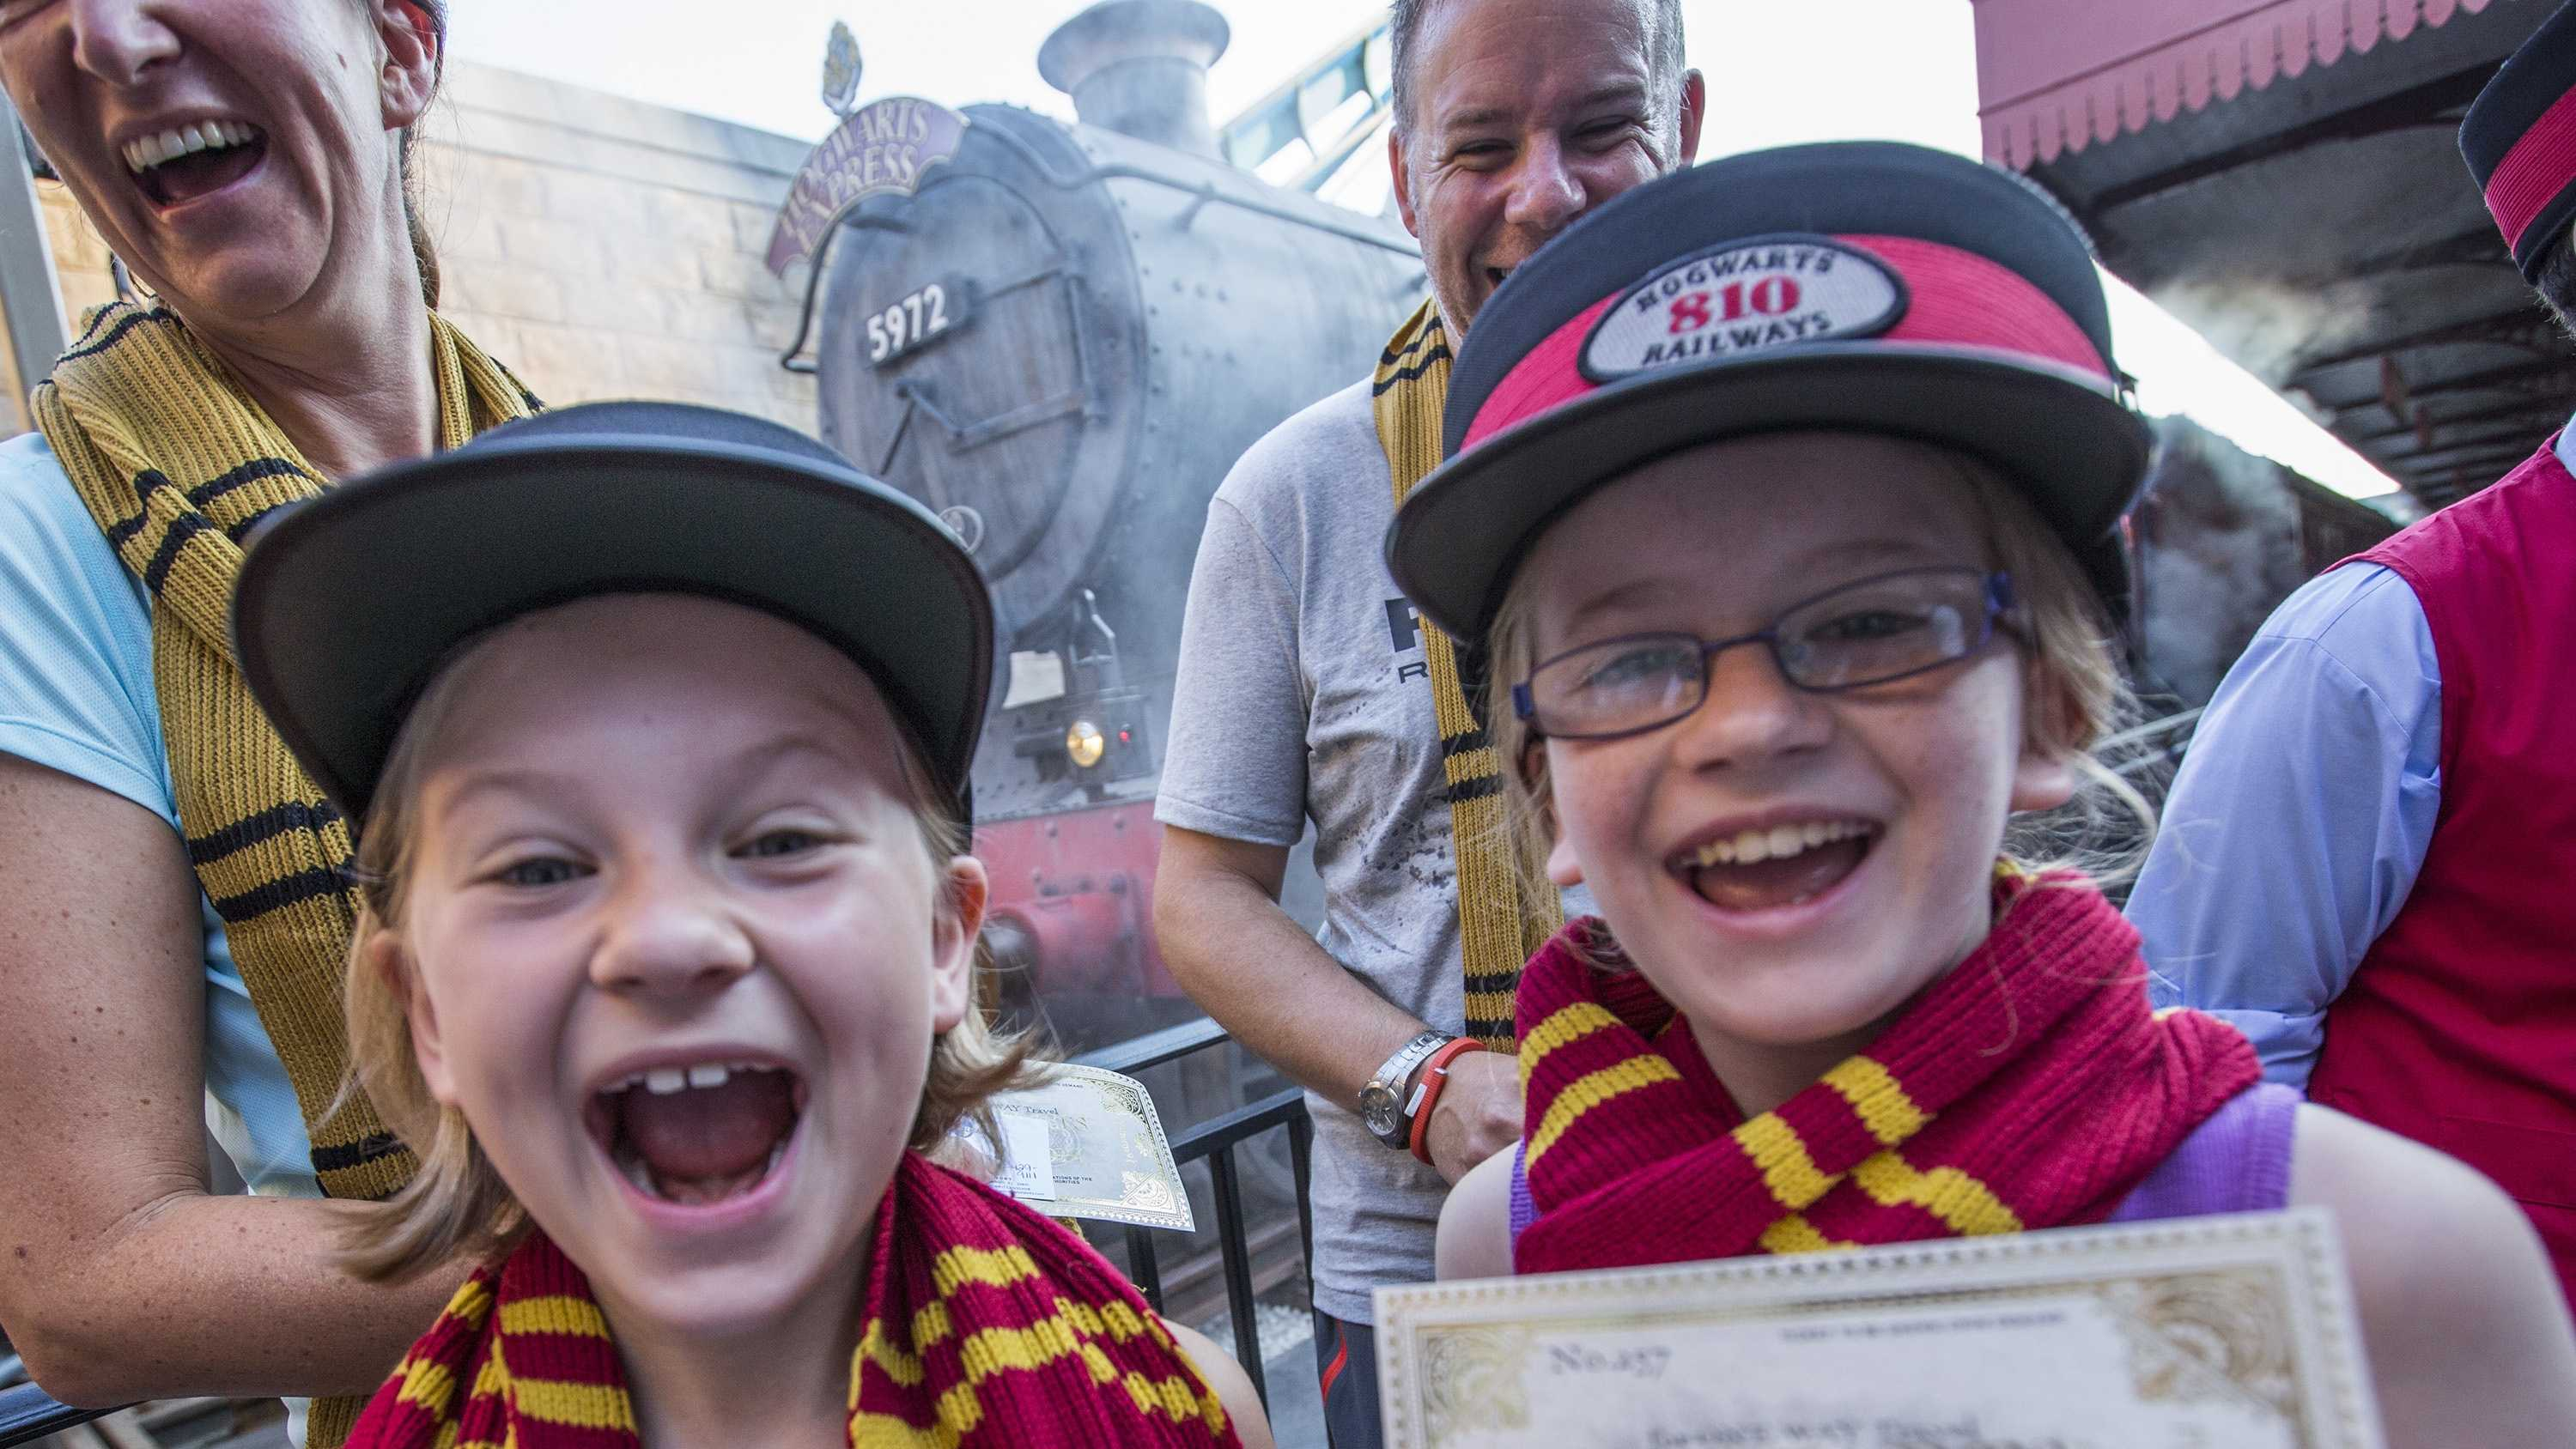 Hogwarts Express Millionth Rider Celebration 2.jpg